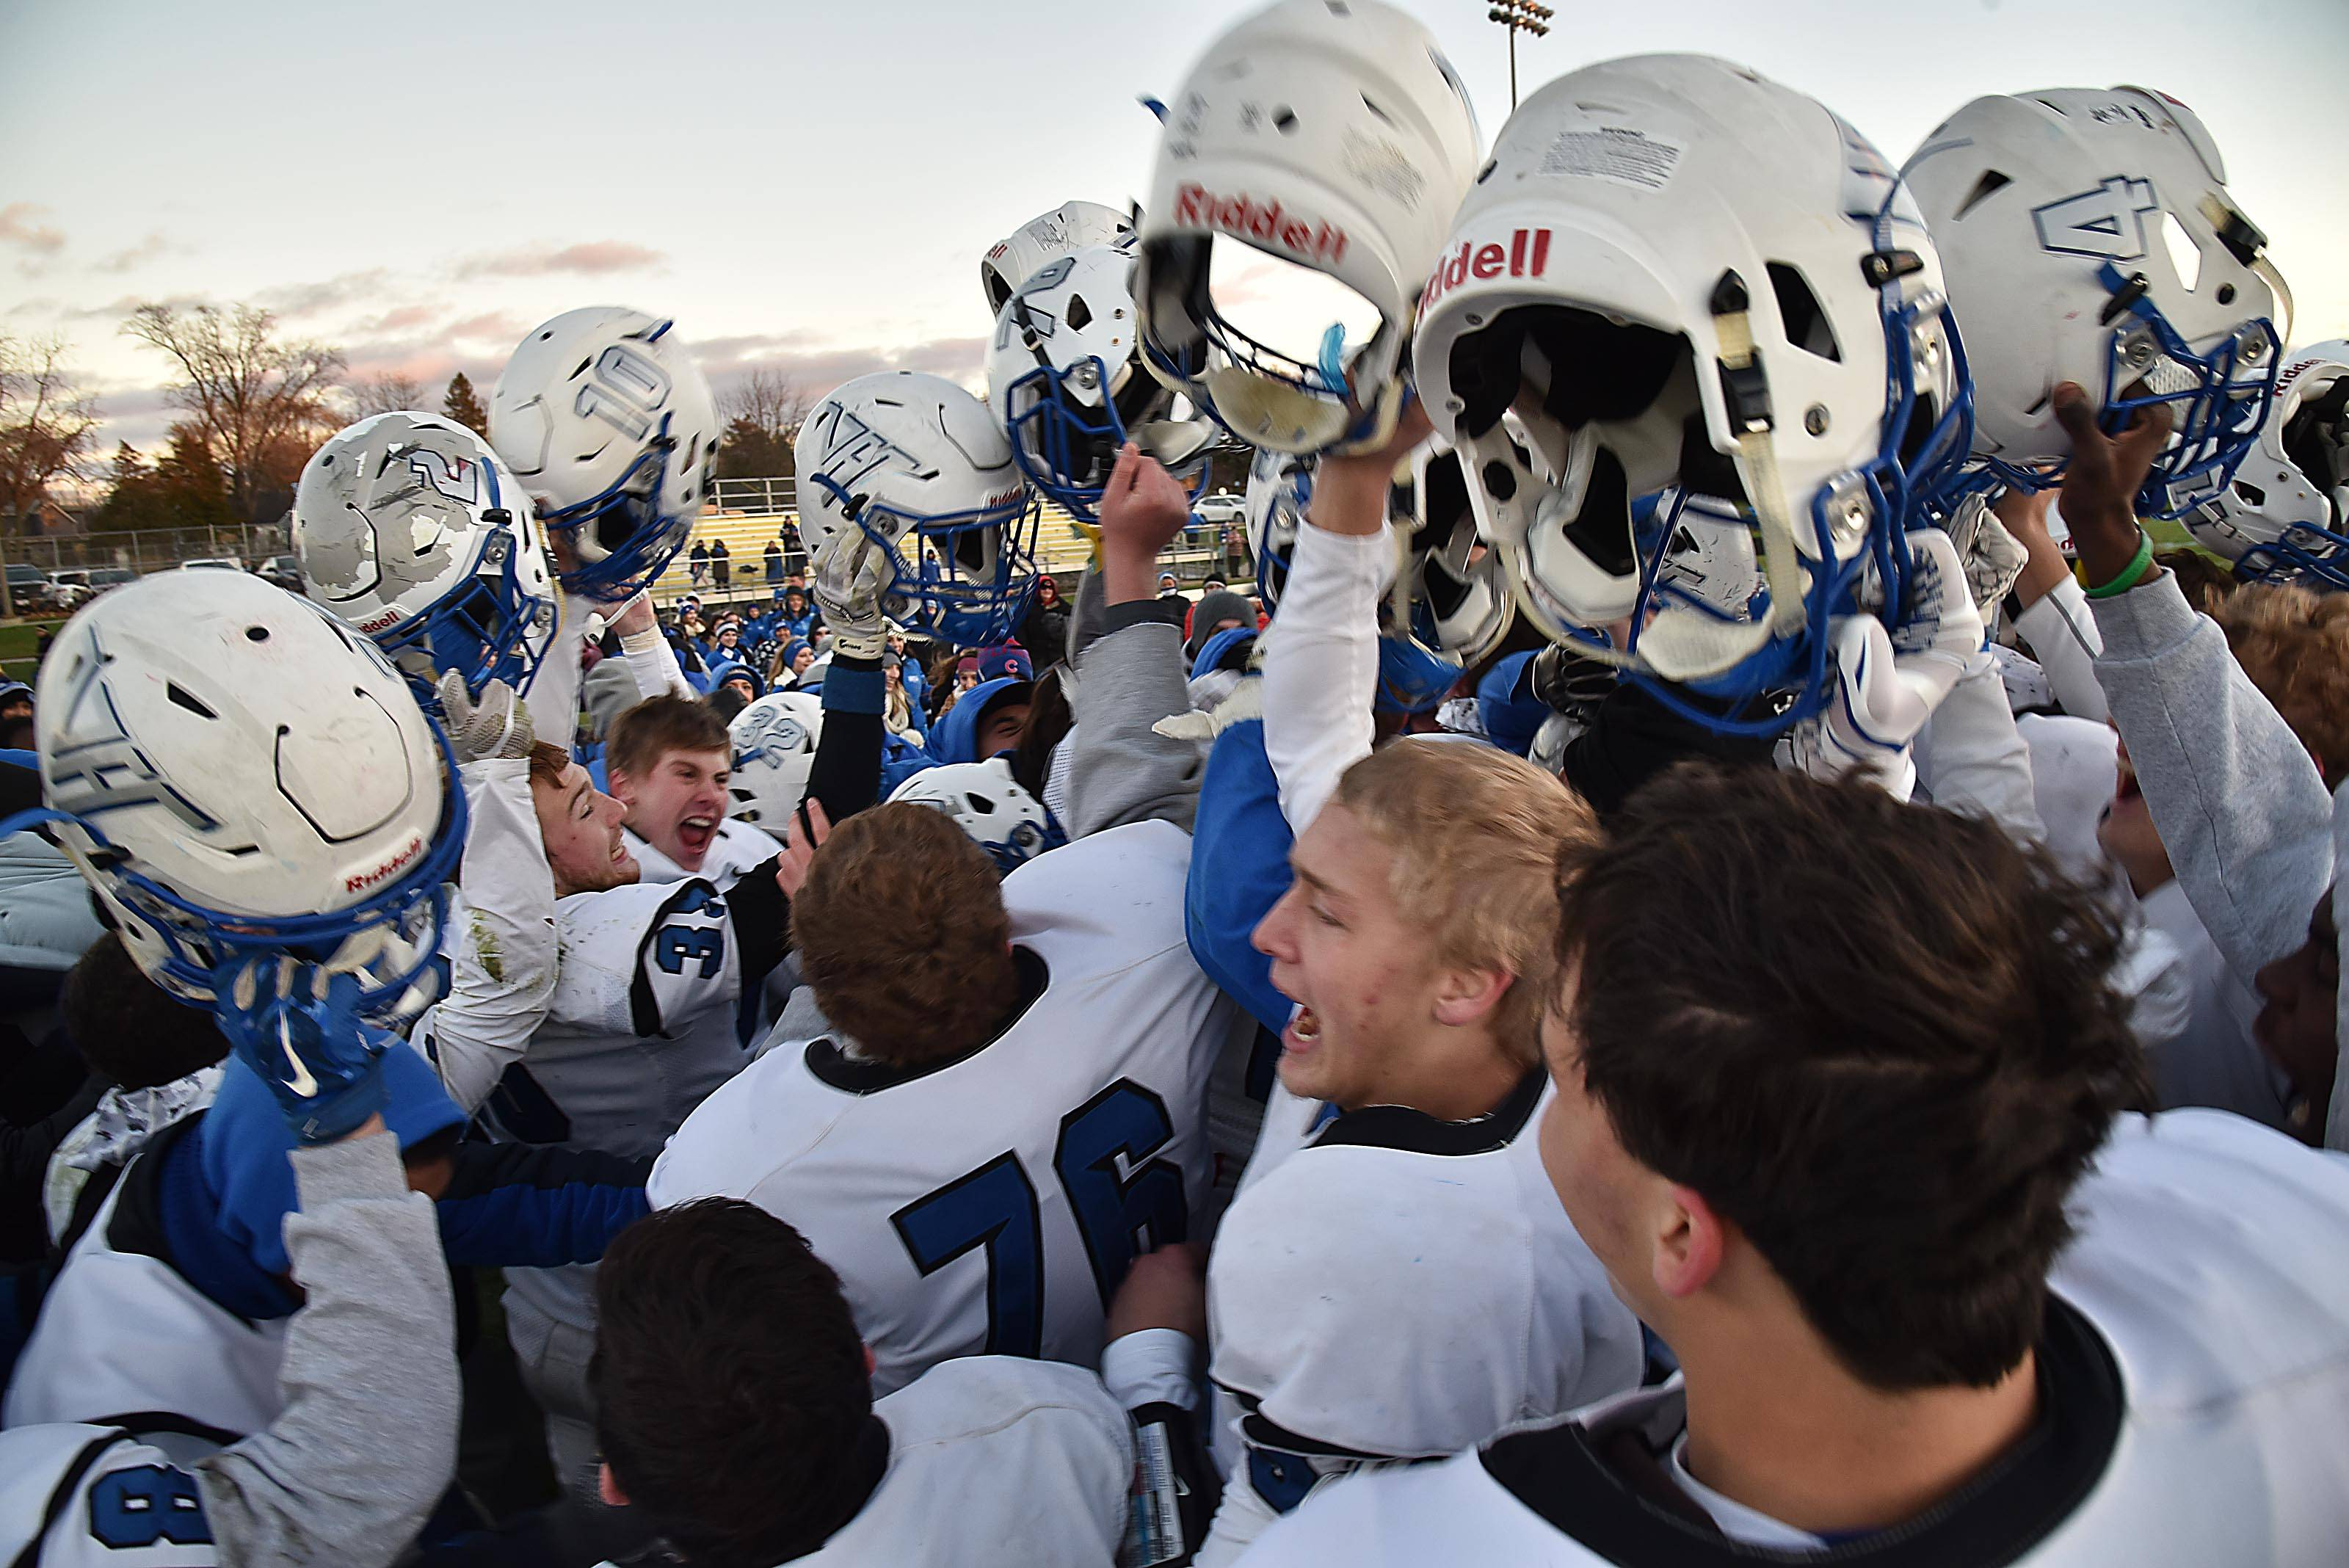 The Vernon Hills Cougars celebrate their win against Sycamore on Saturday in the Class 5A football state semifinals in Sycamore.